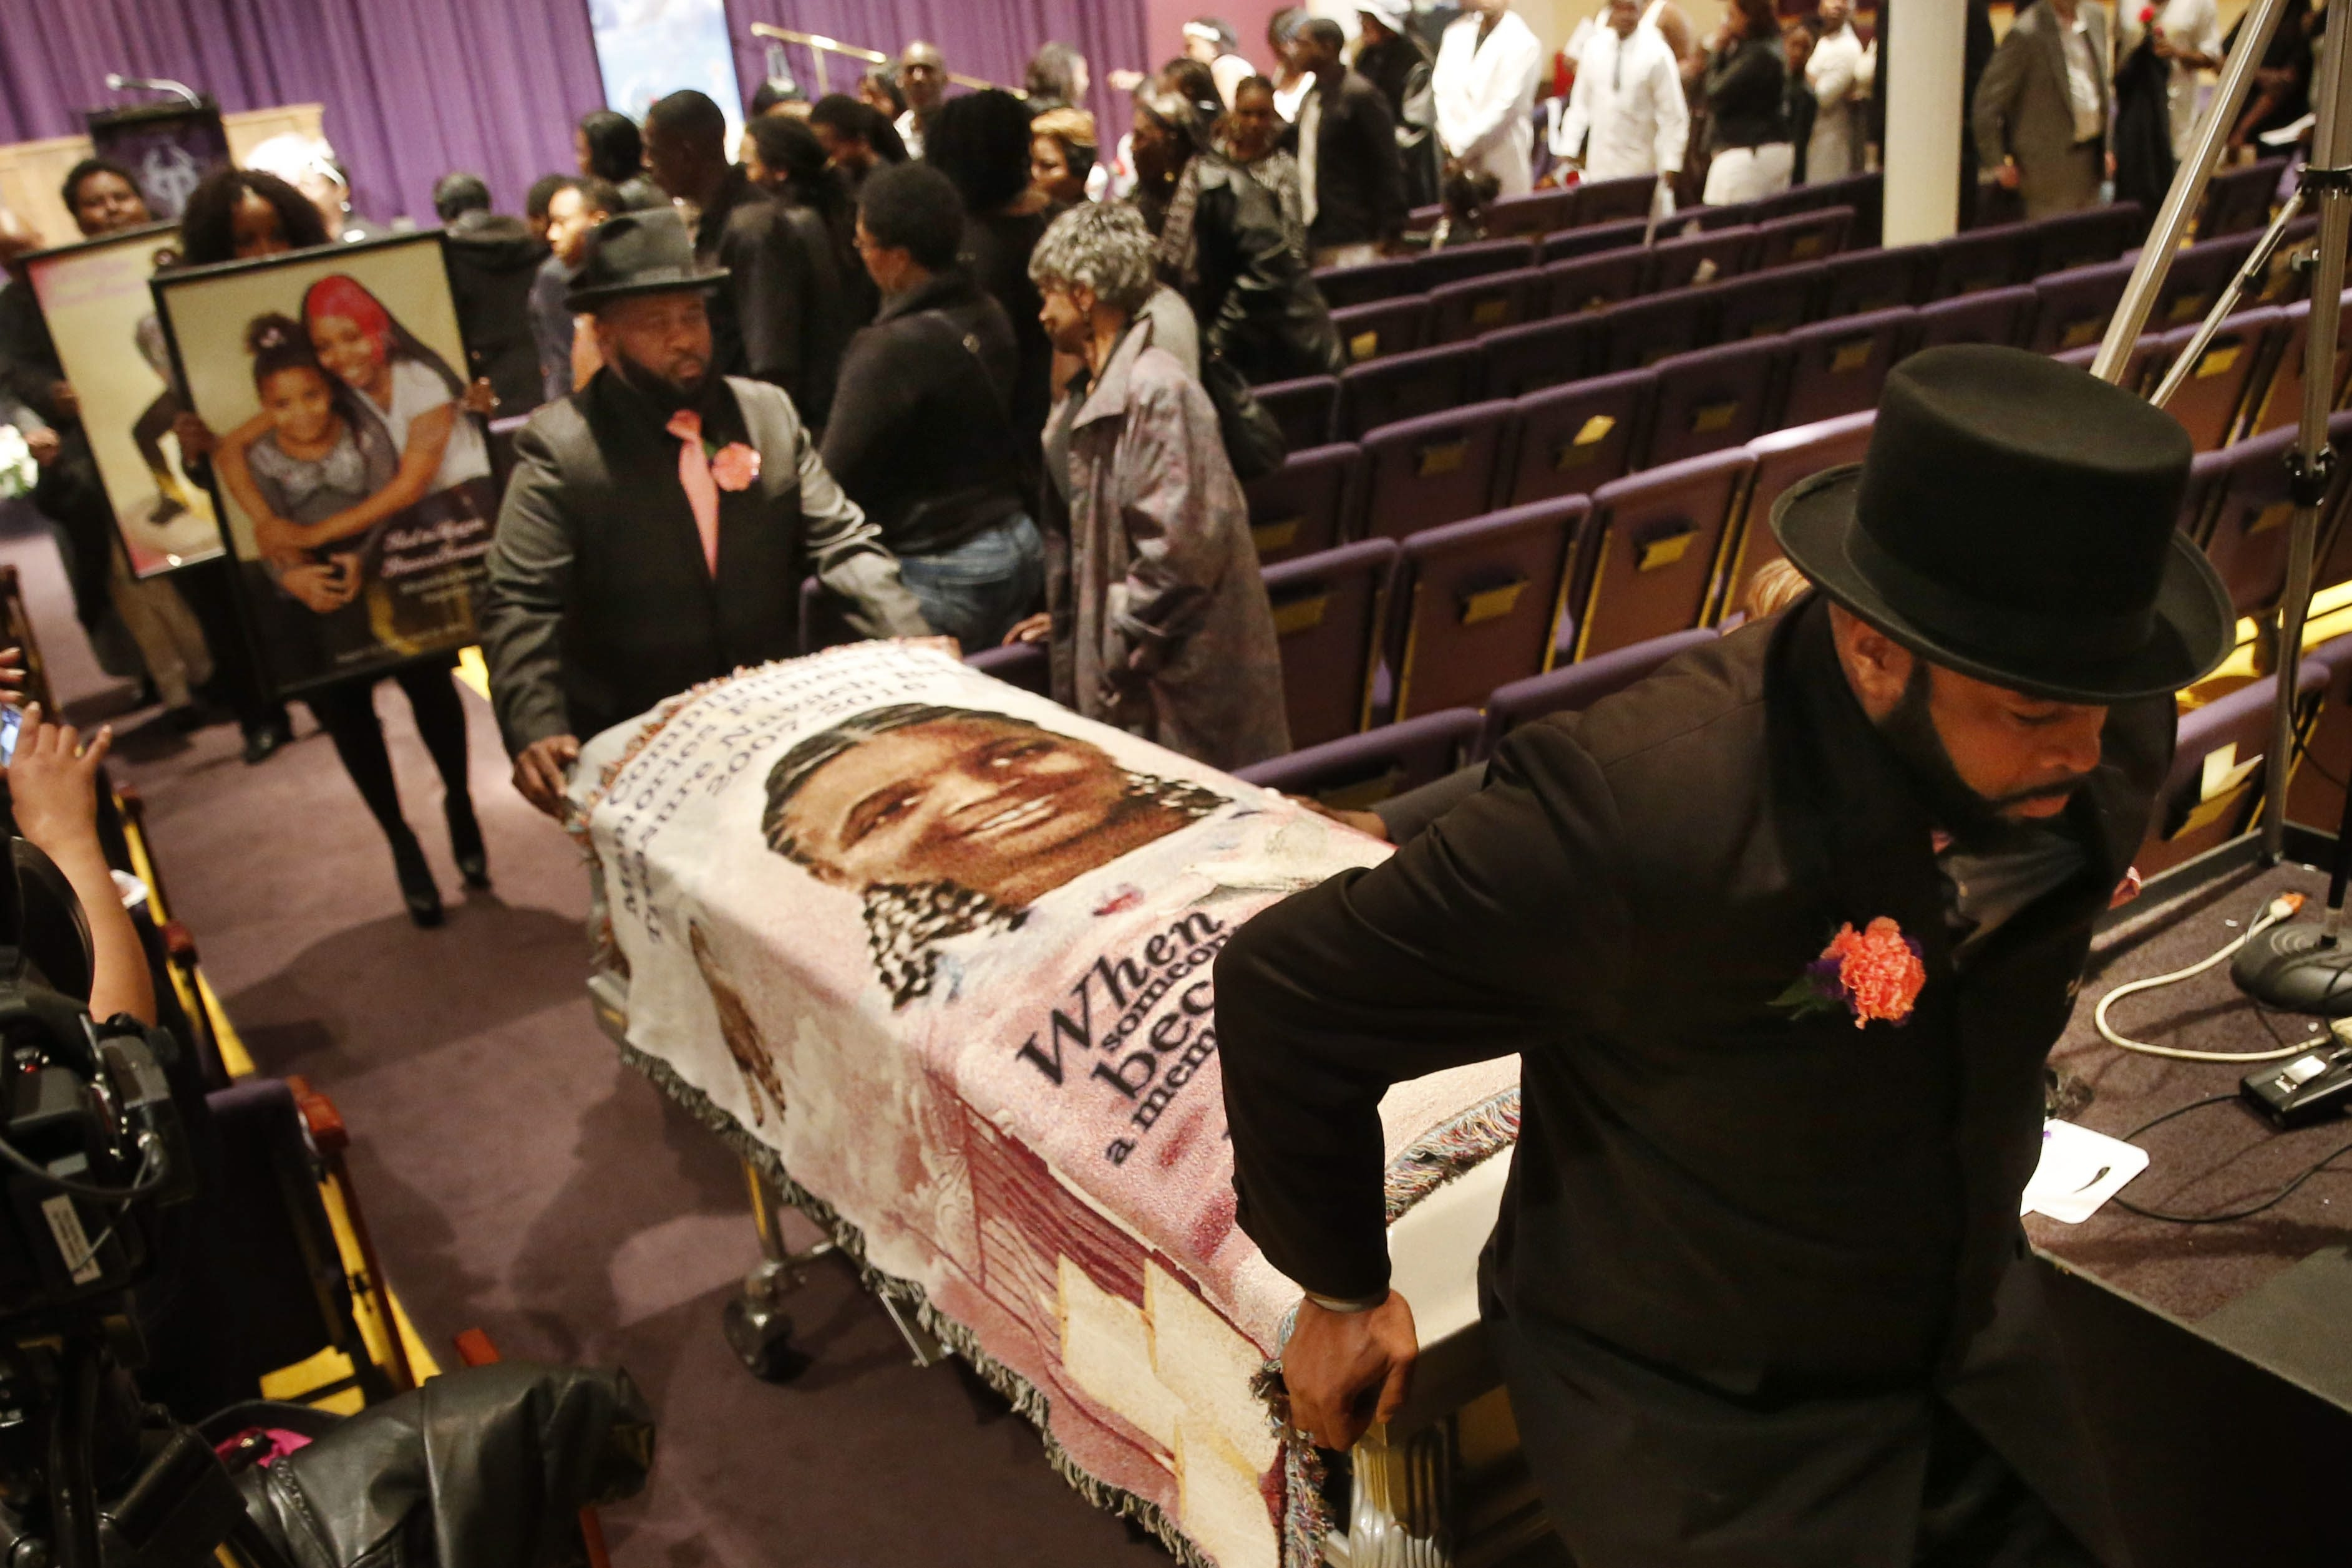 Pallbearers carry the casket of 8-year-old Treasure Brighon, who died after battling injuries she suffered in a deadly house fire in February, during her funeral at True Bethel Baptist Church on Monday.